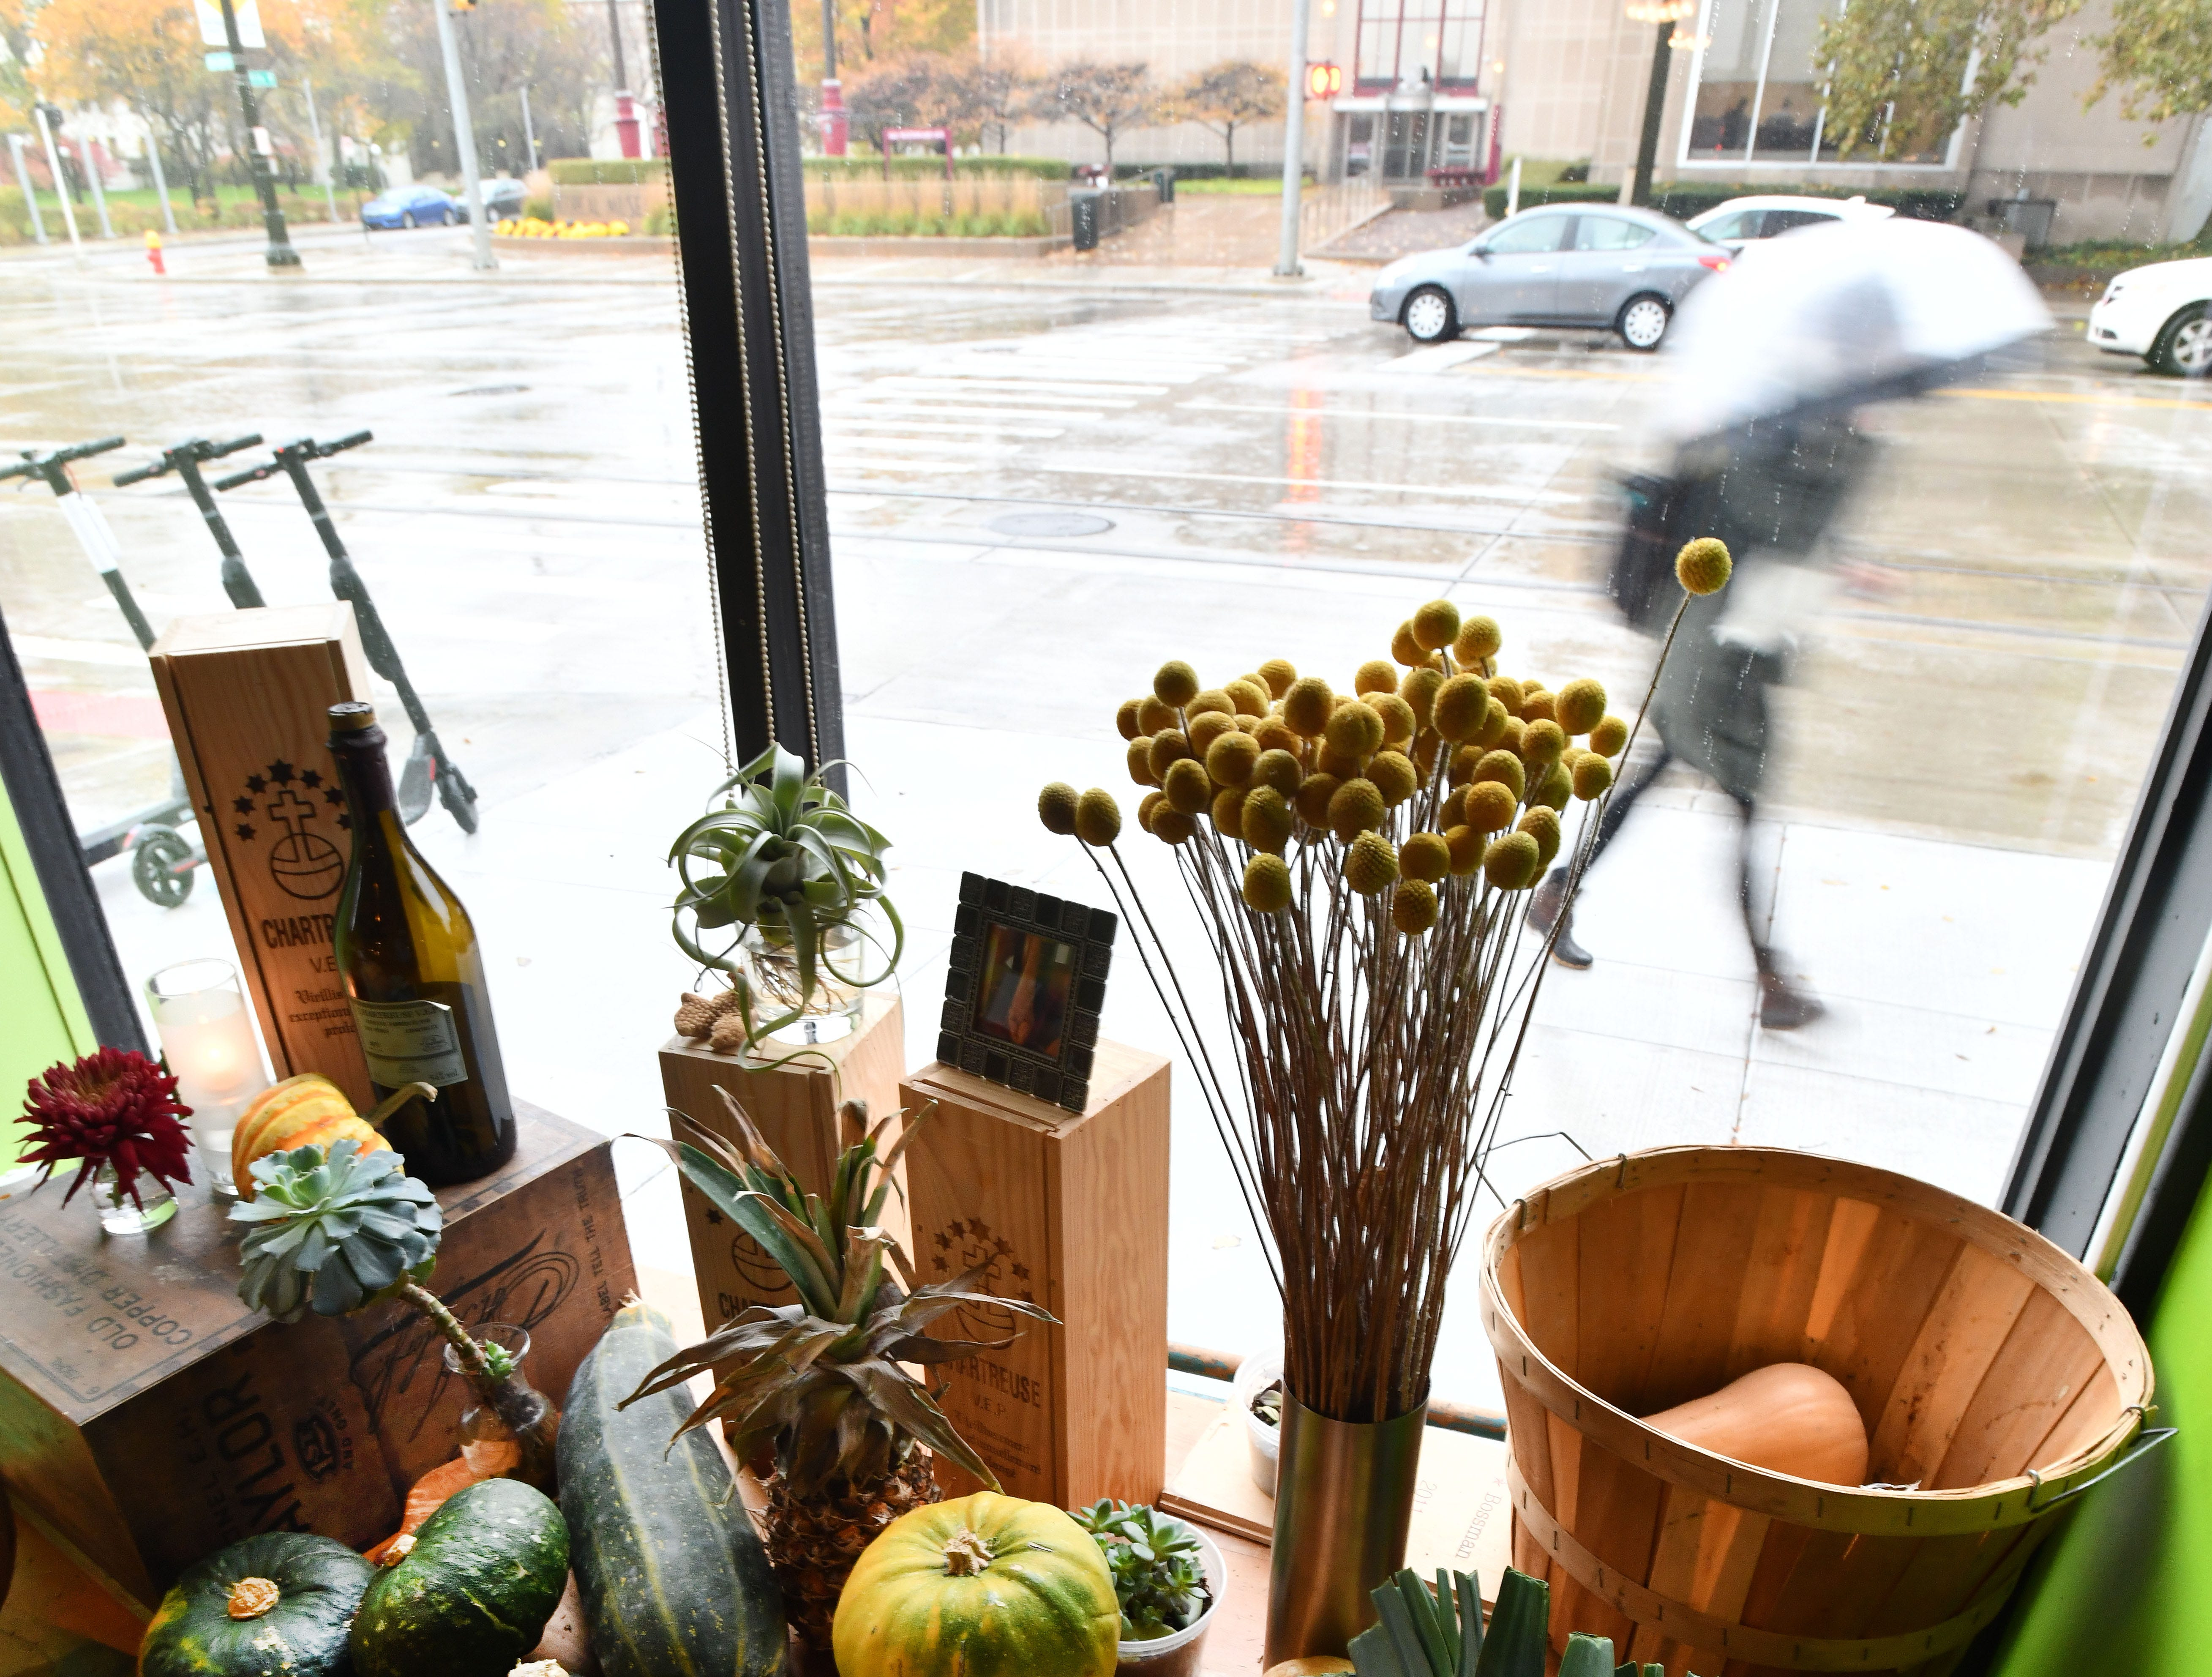 A table filled with vegetables overlooking Woodward Avenue on a rainy November afternoon.